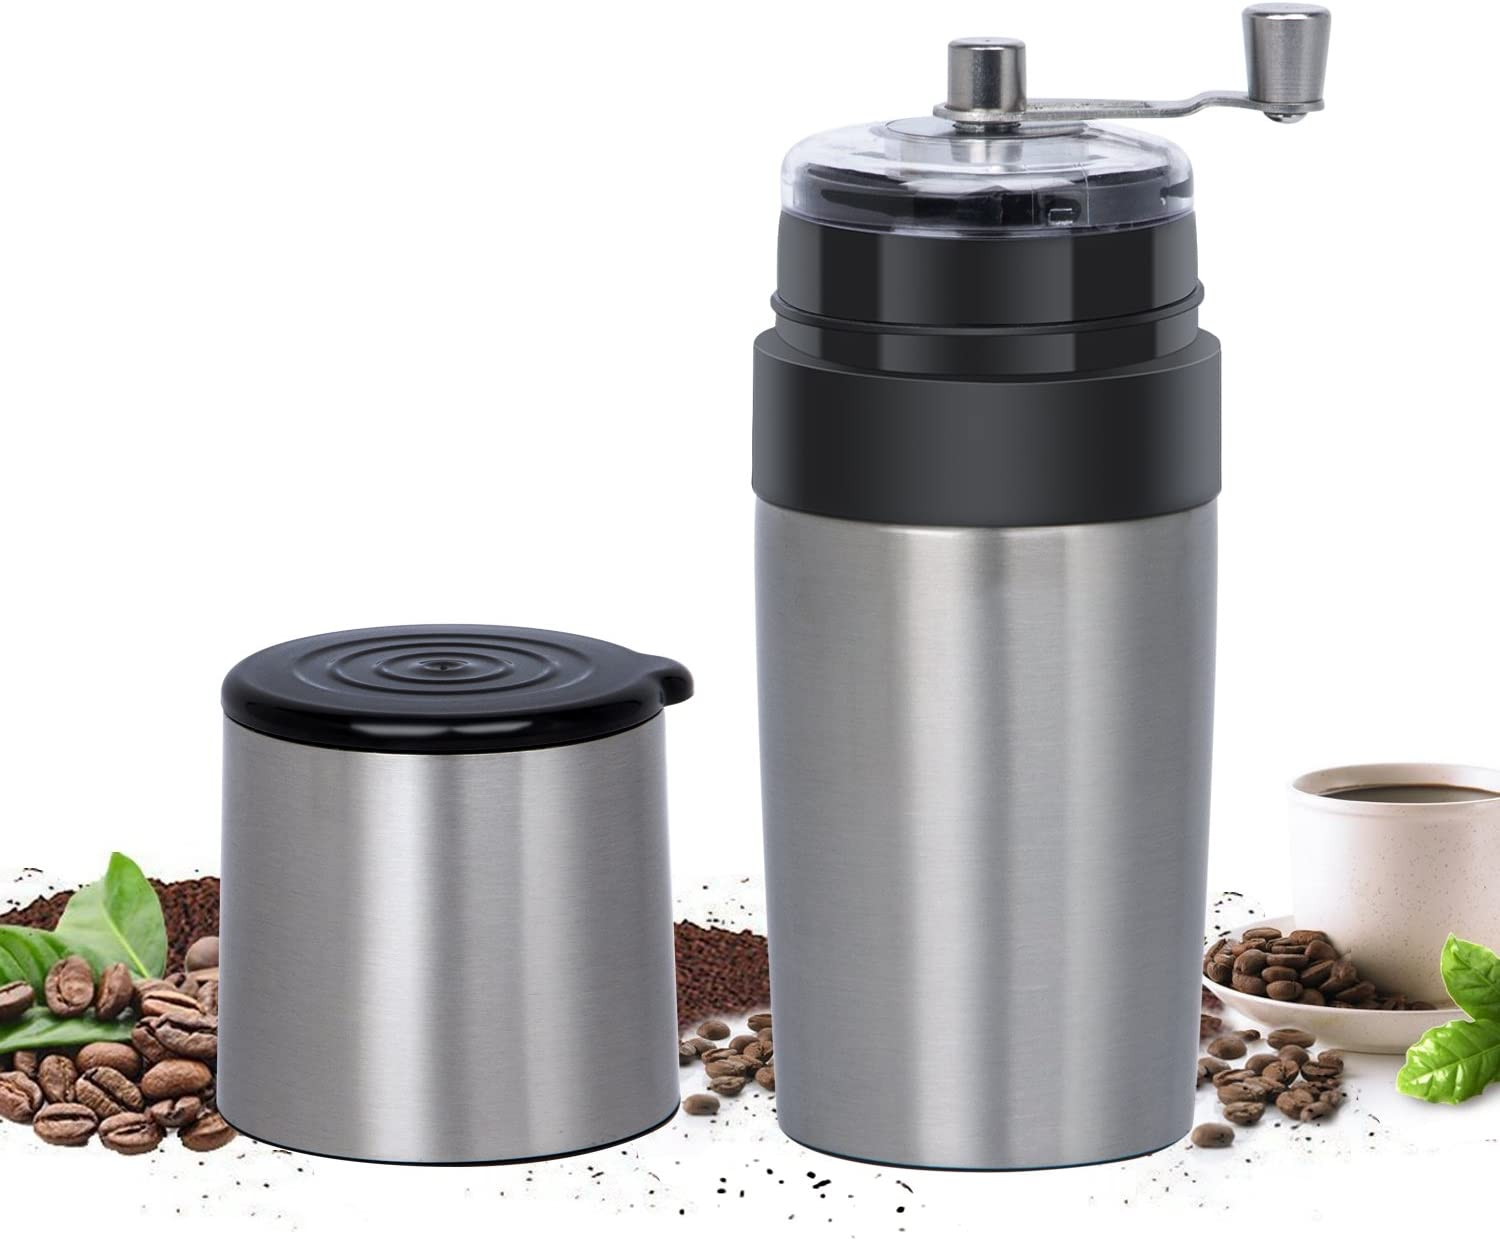 Details about  /Mini Stainless Steel Manual Coffee Grinder Coffee Bean Mill Machine Kitchen Tool